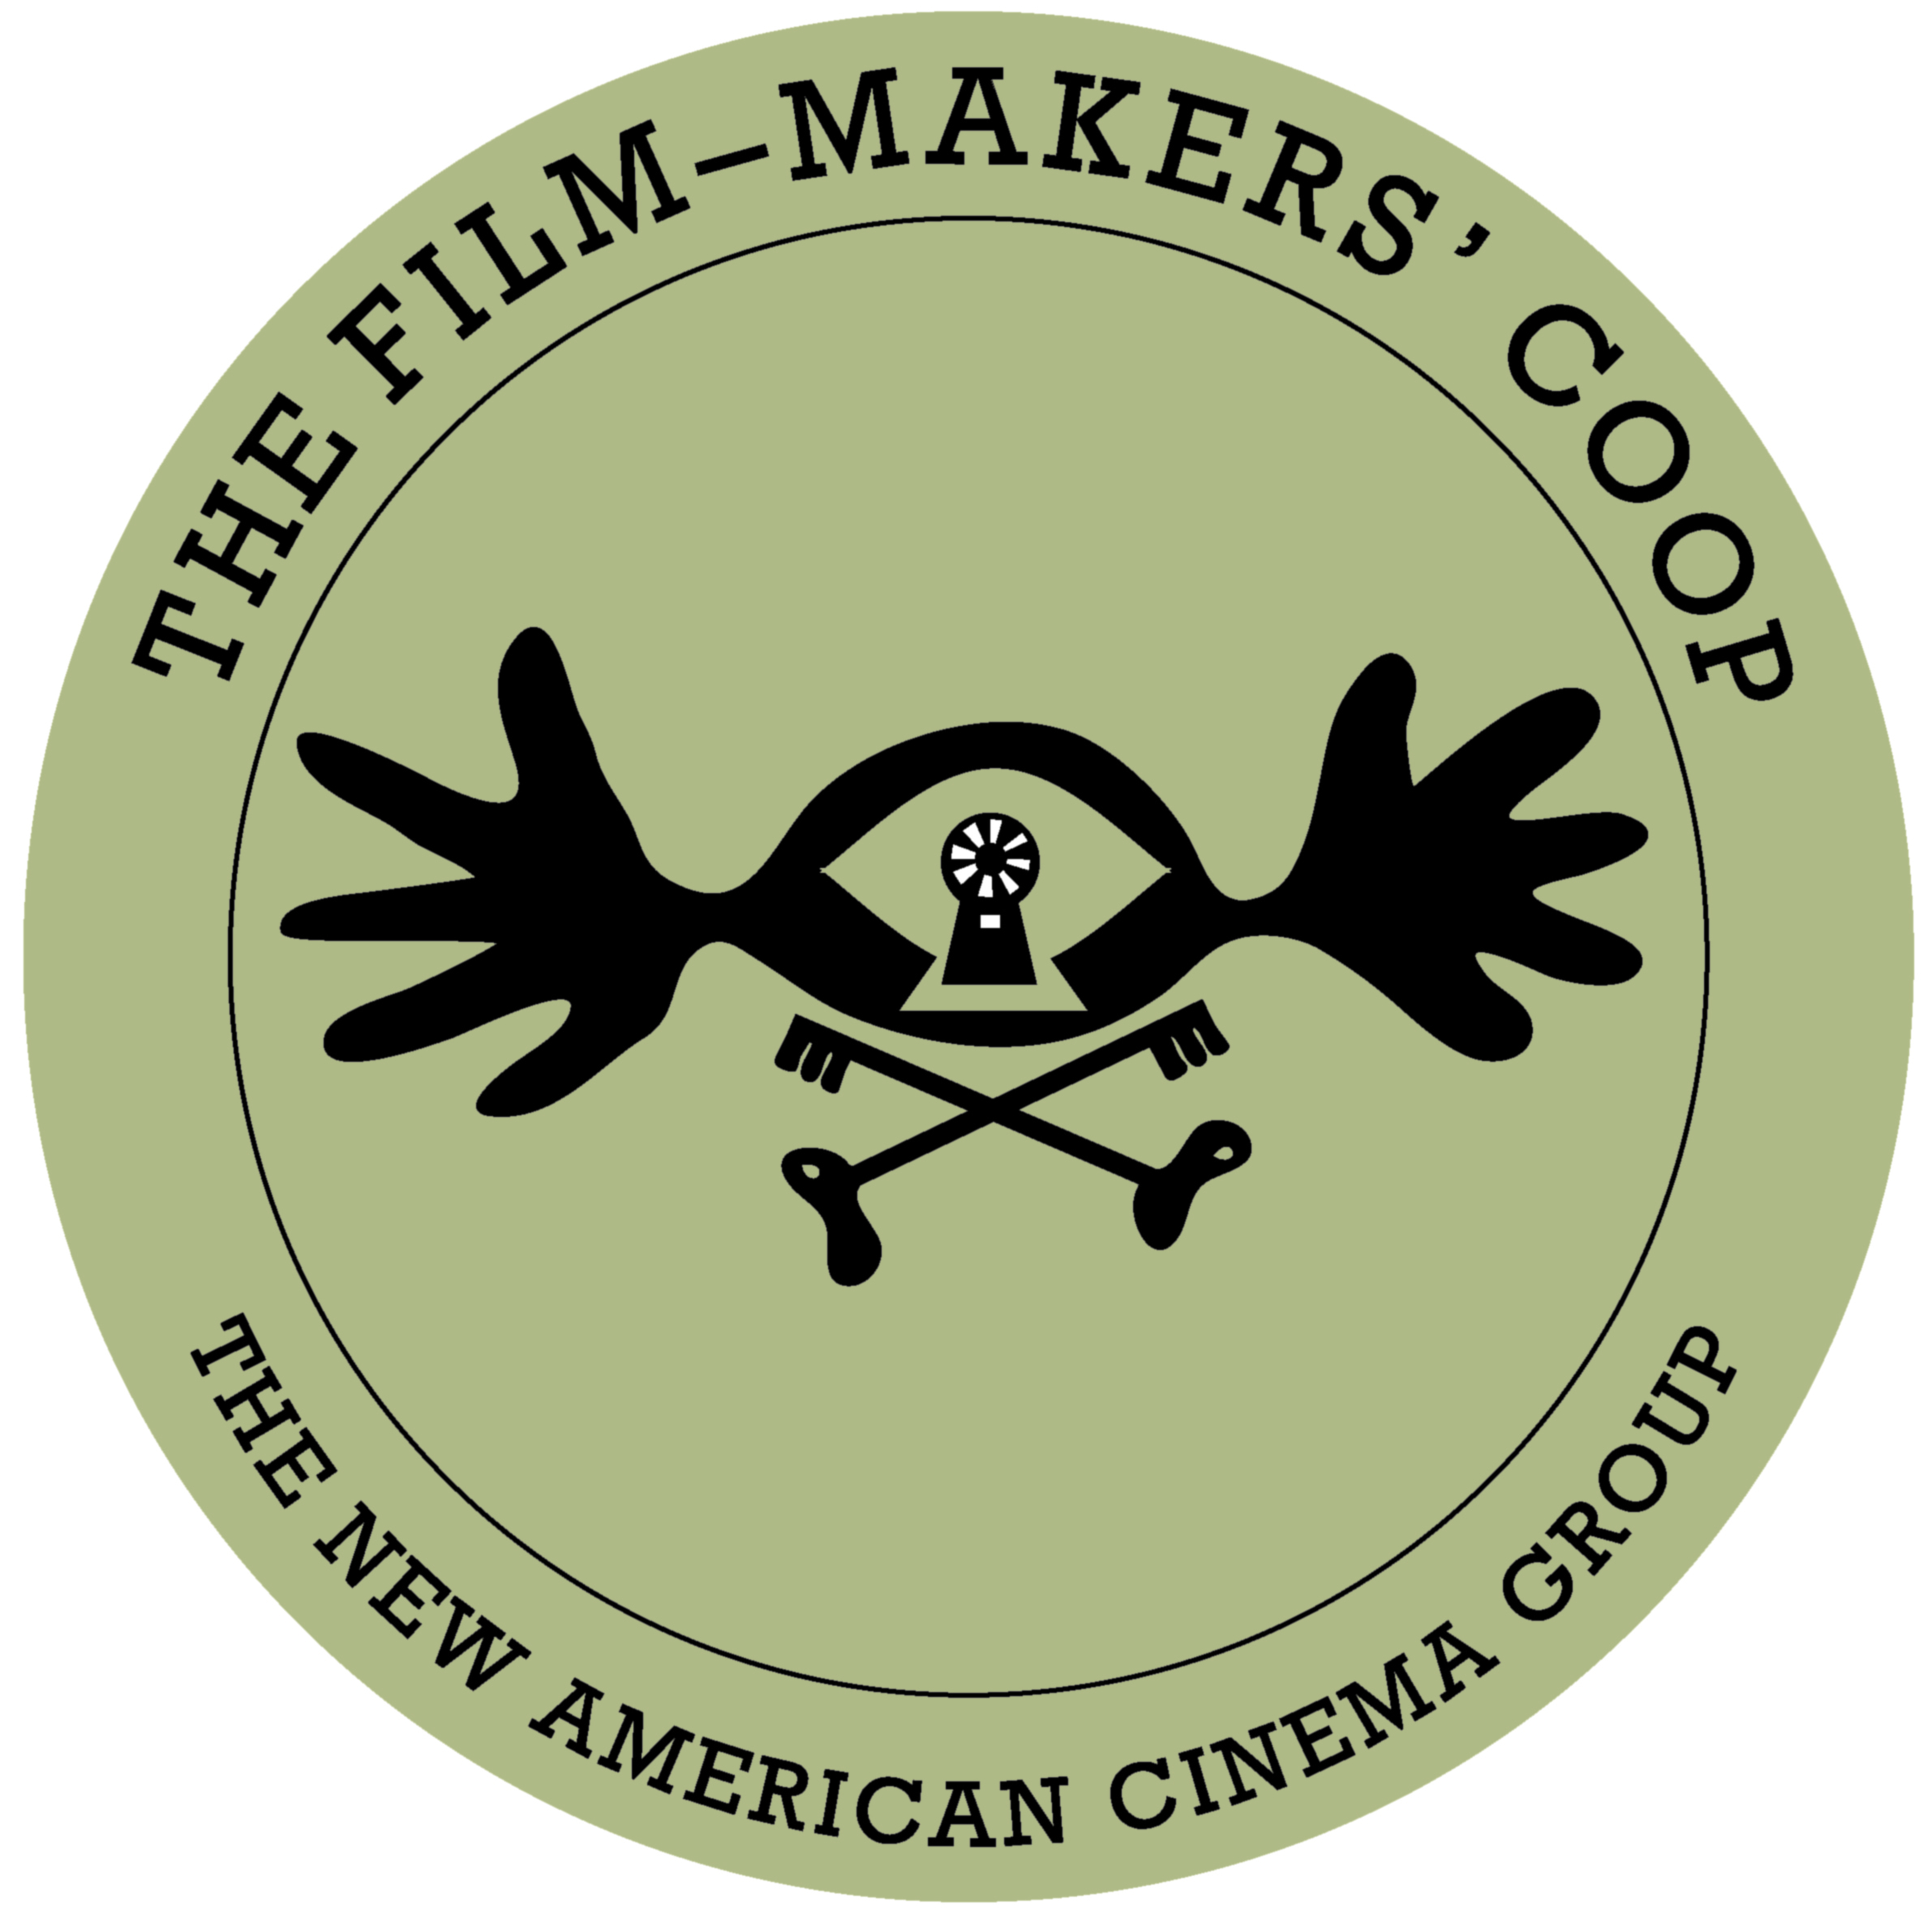 Film-Makers' Coop